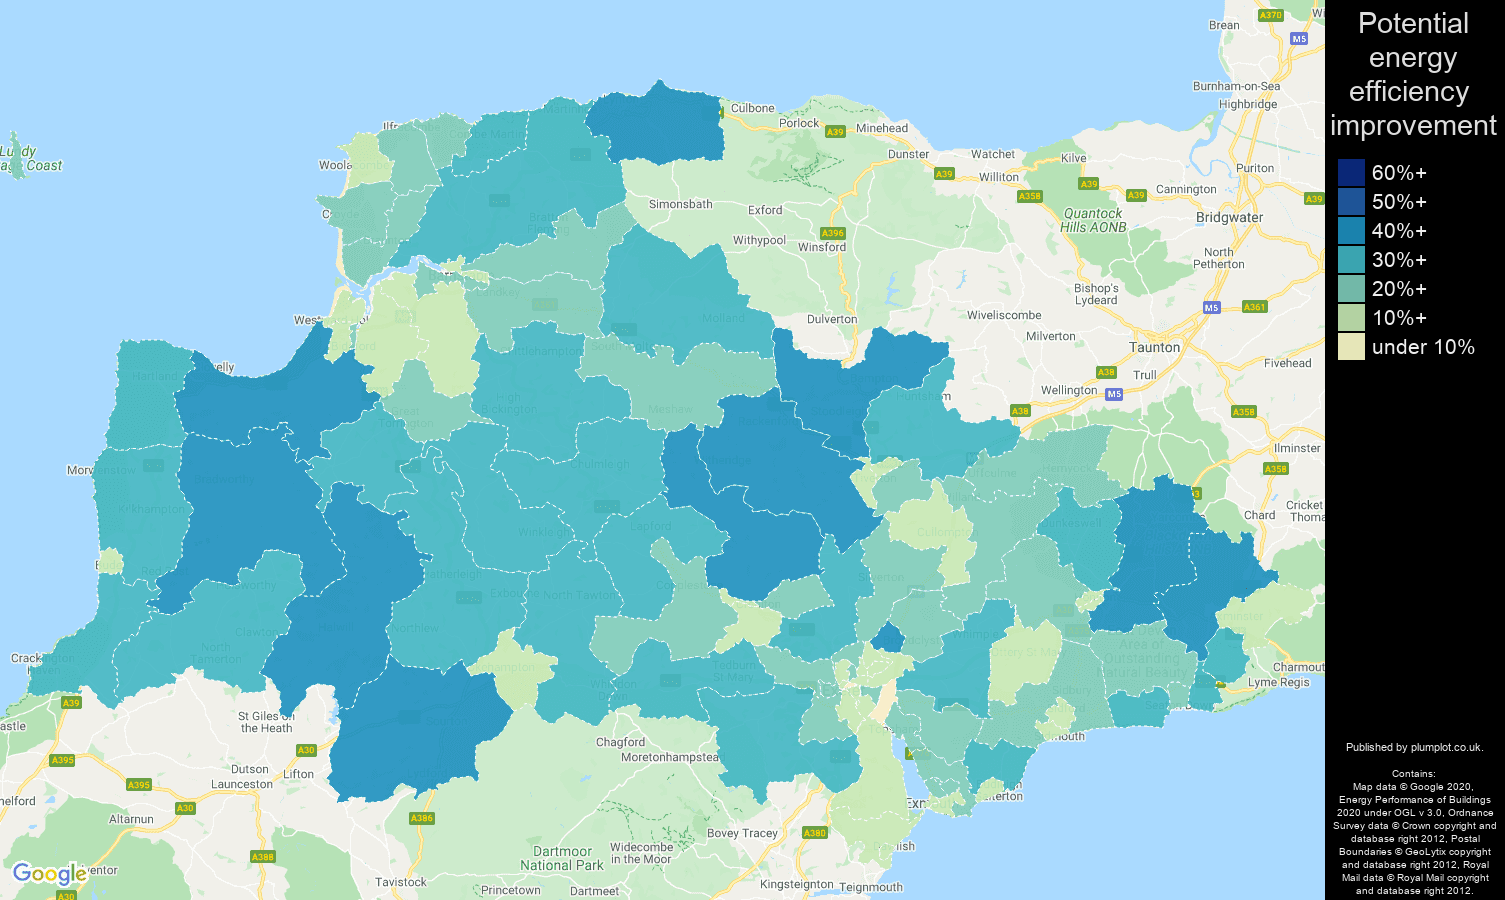 Exeter map of potential energy efficiency improvement of properties